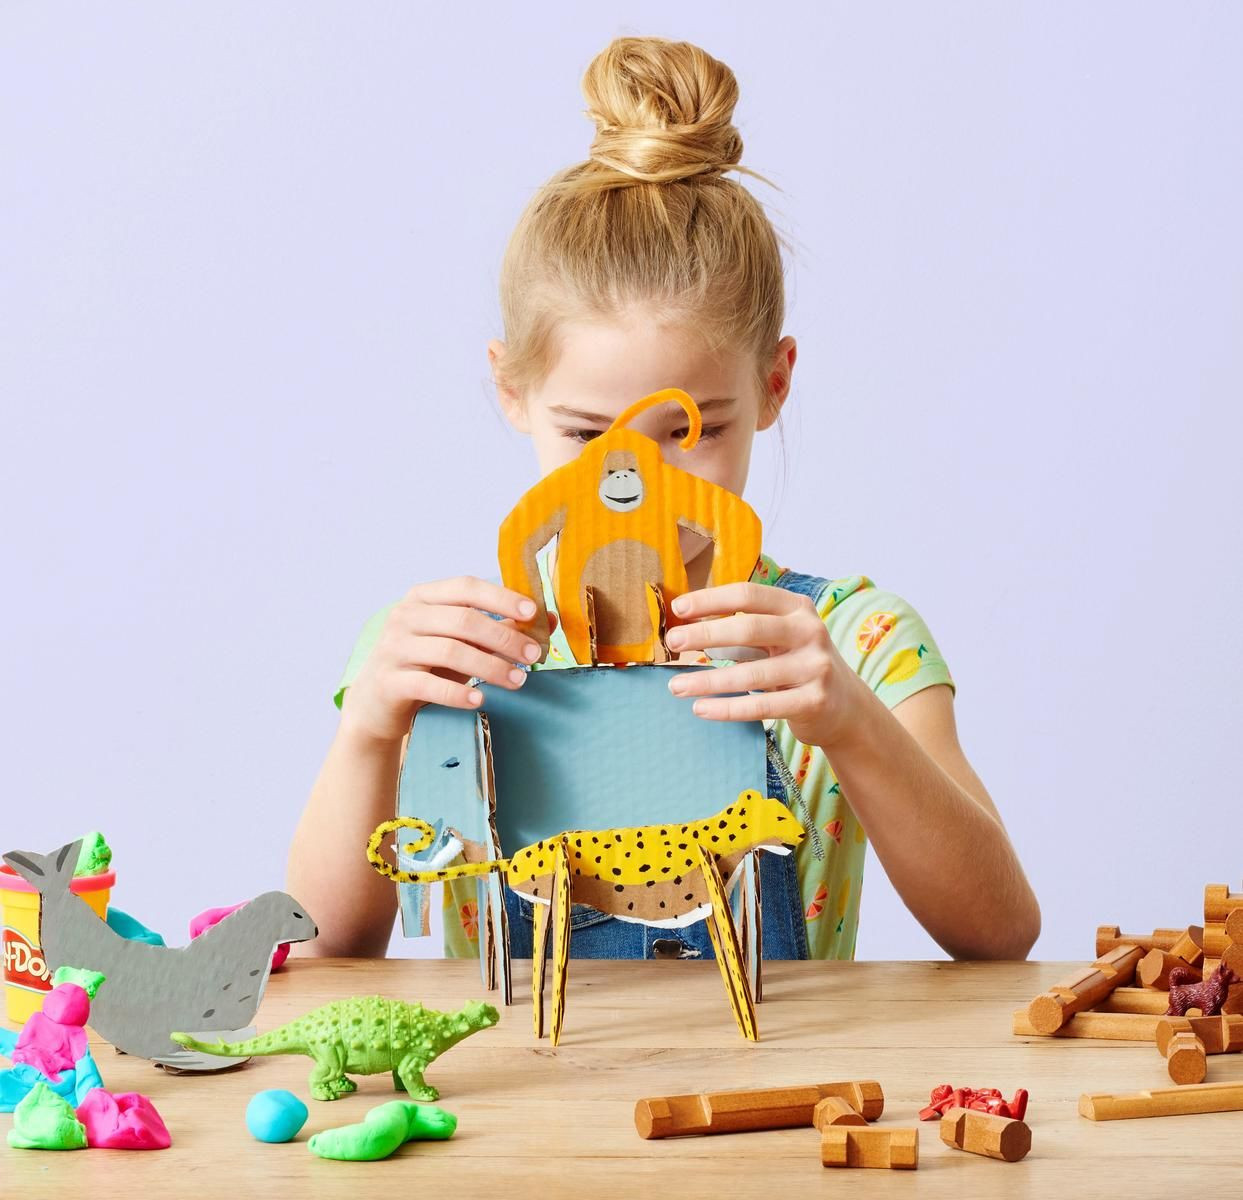 Best ideas about Arts And Crafts For Little Kids . Save or Pin Cool Paper Crafts for Kids Now.